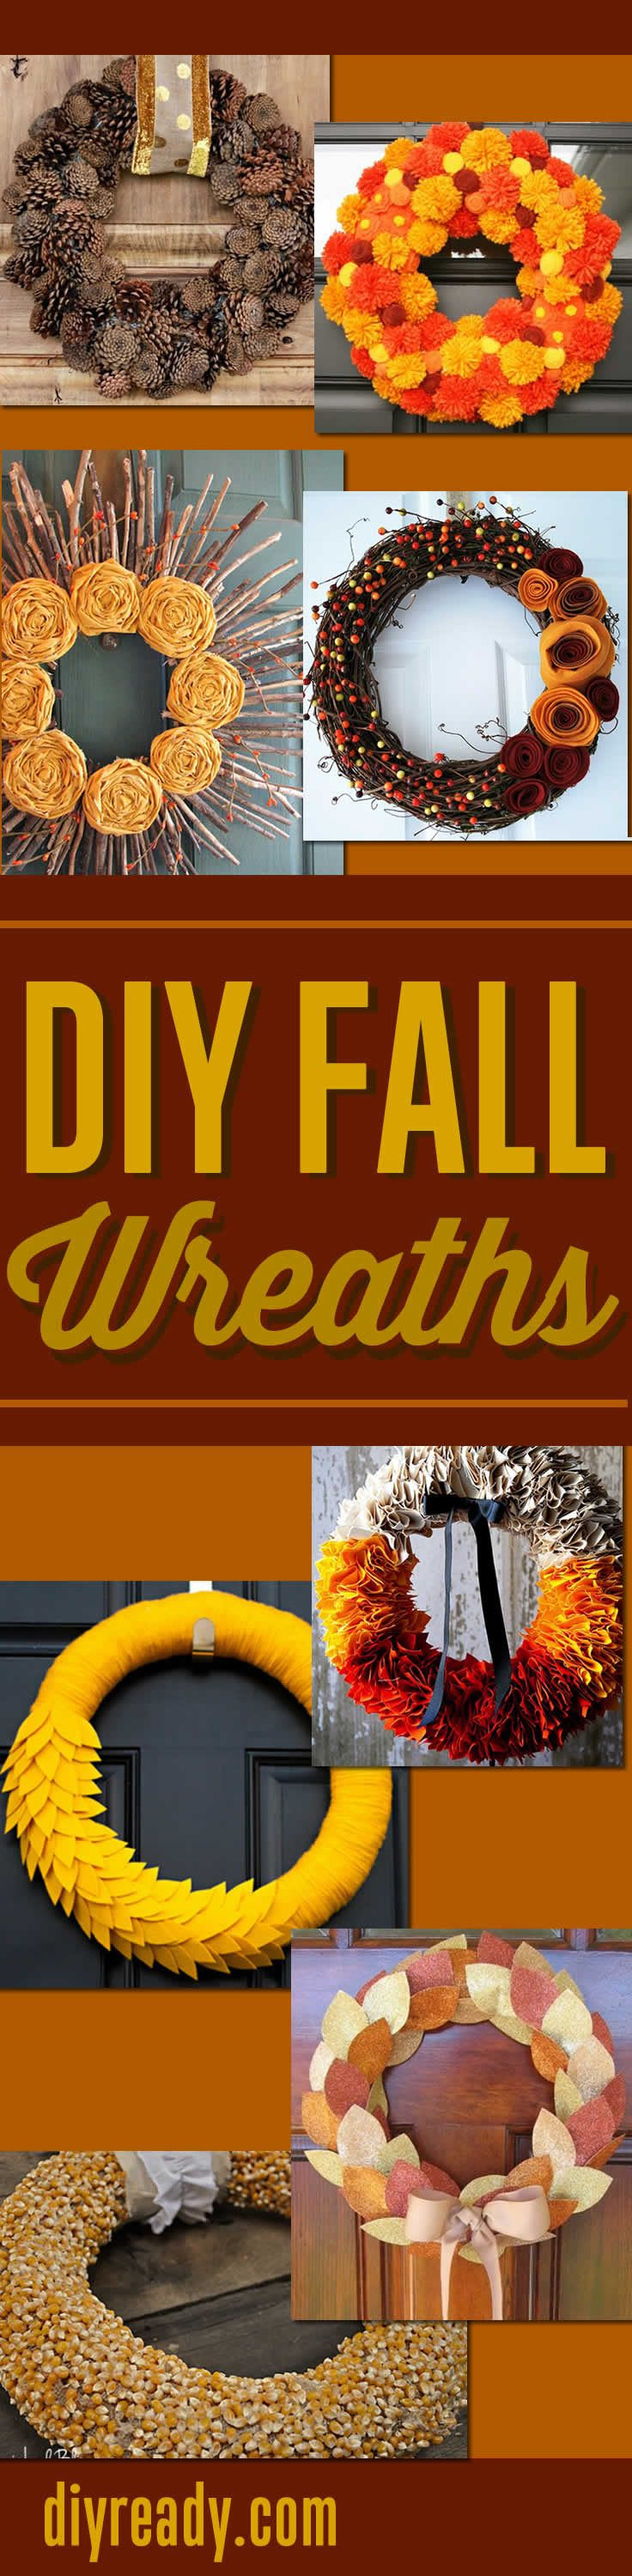 DIY Fall Wreaths - Super Homemade Wreaths for Your Front Door diyready.com #diy #fall #crafts #projects